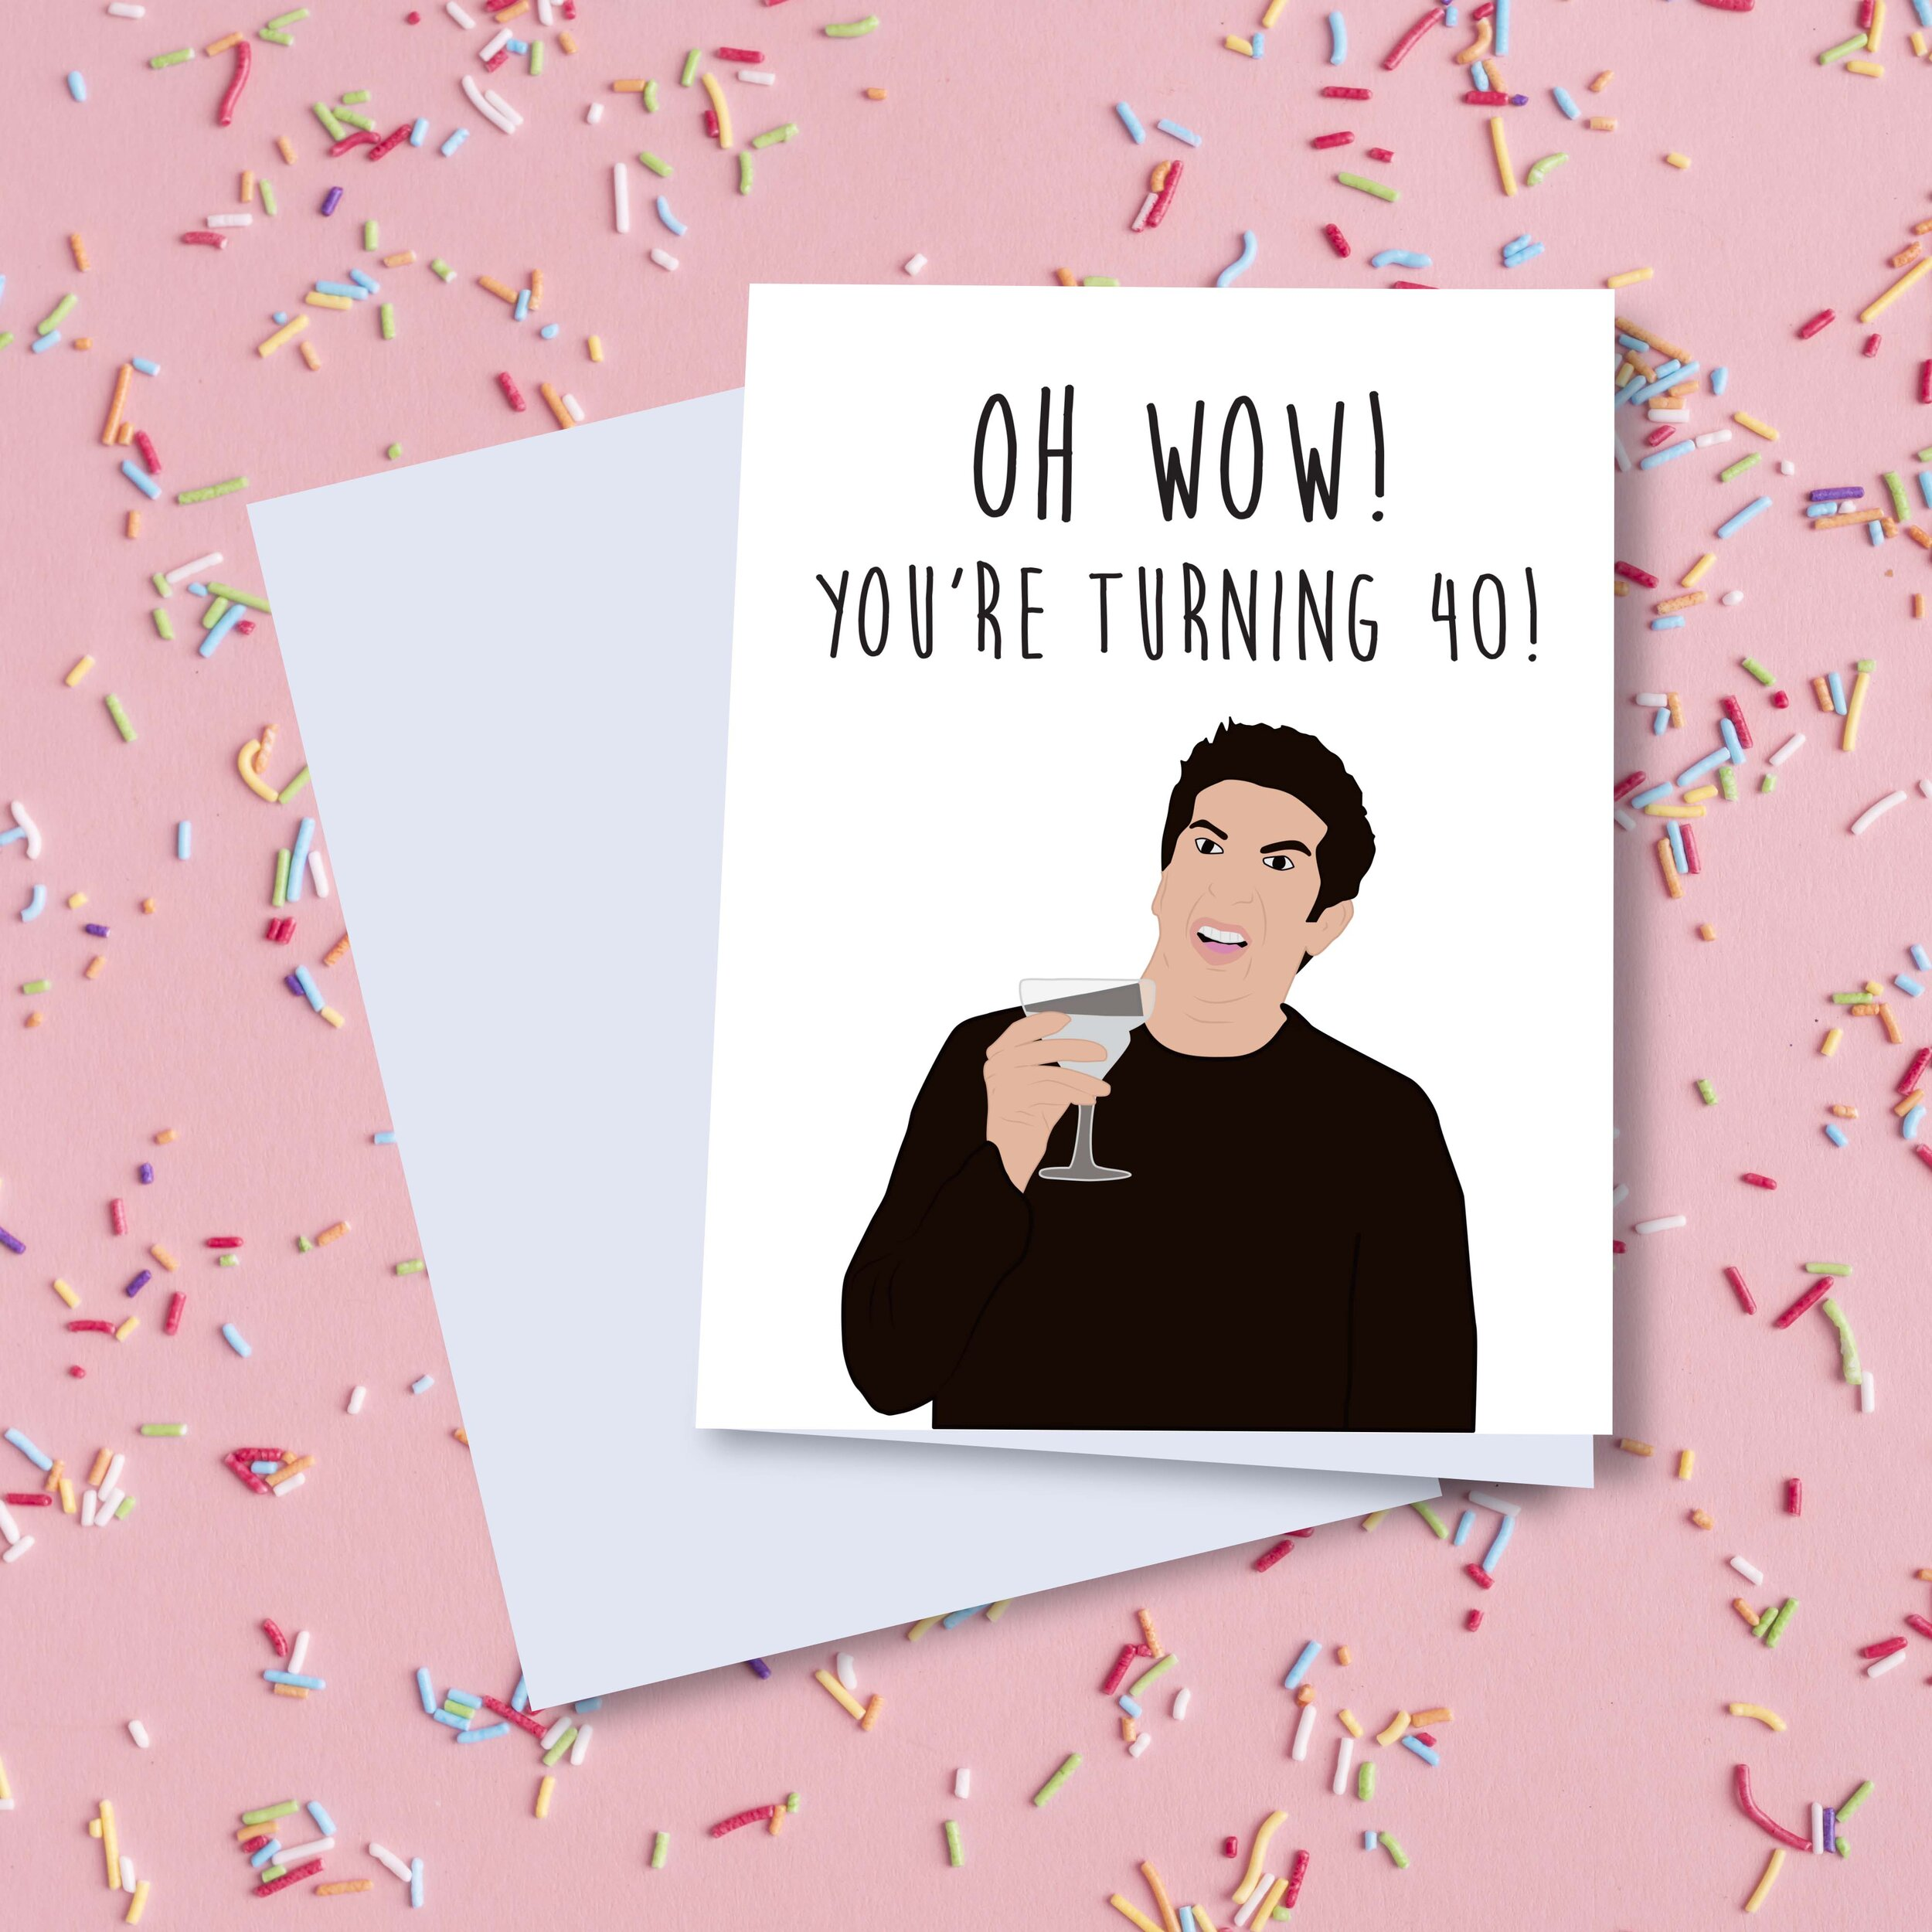 It's just an image of Universal Printable 40th Birthday Cards